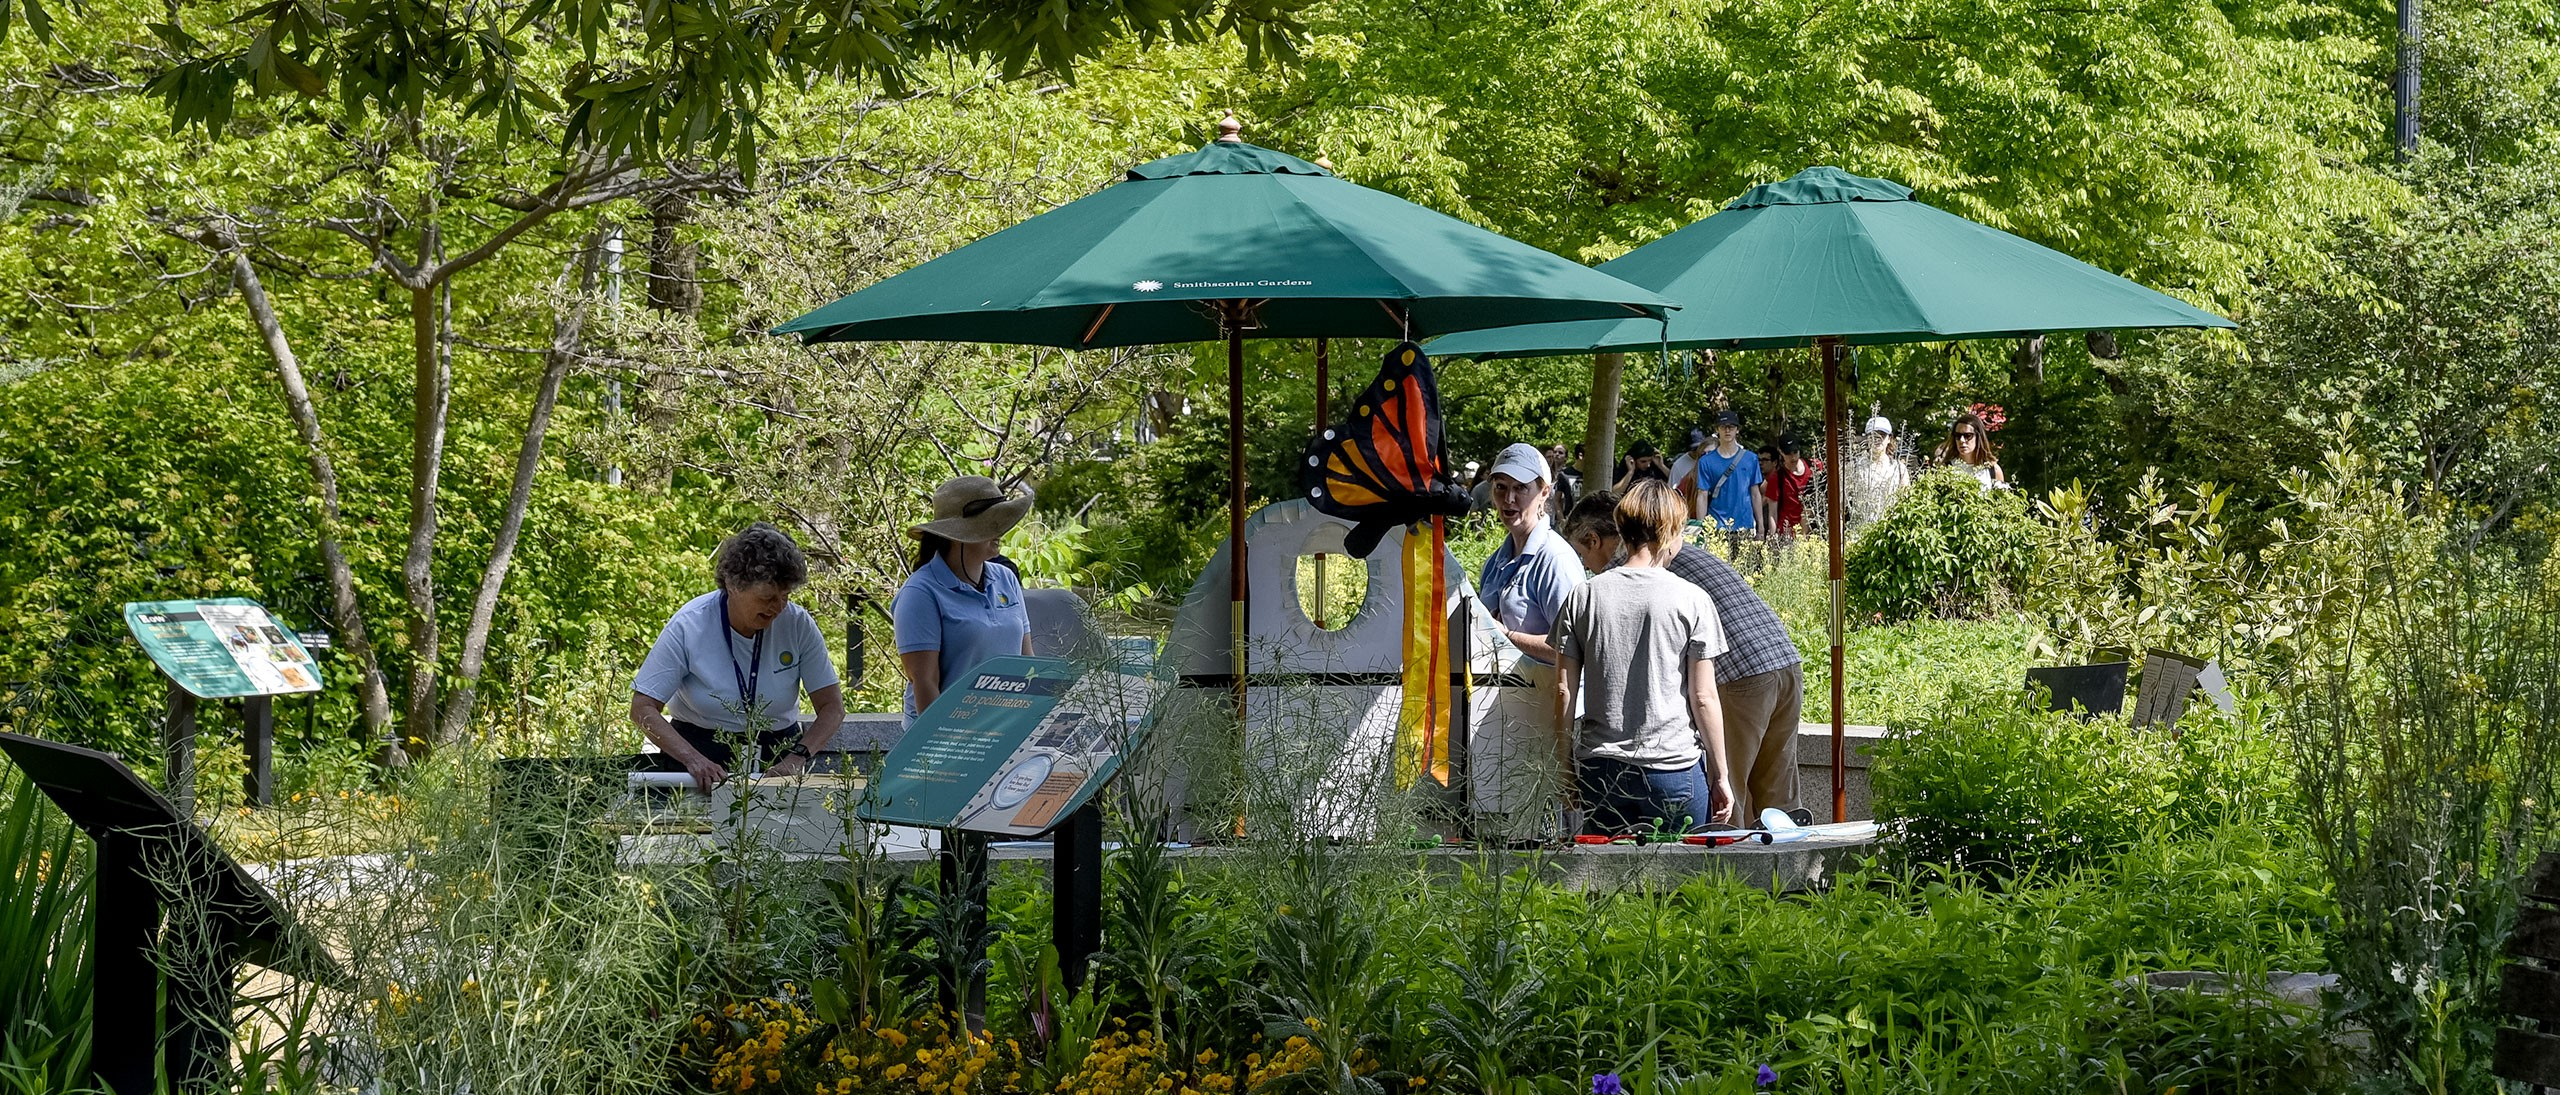 Staff setting up green shade umbrellas, large windsock bugs and other supplies in Pollinator Garden